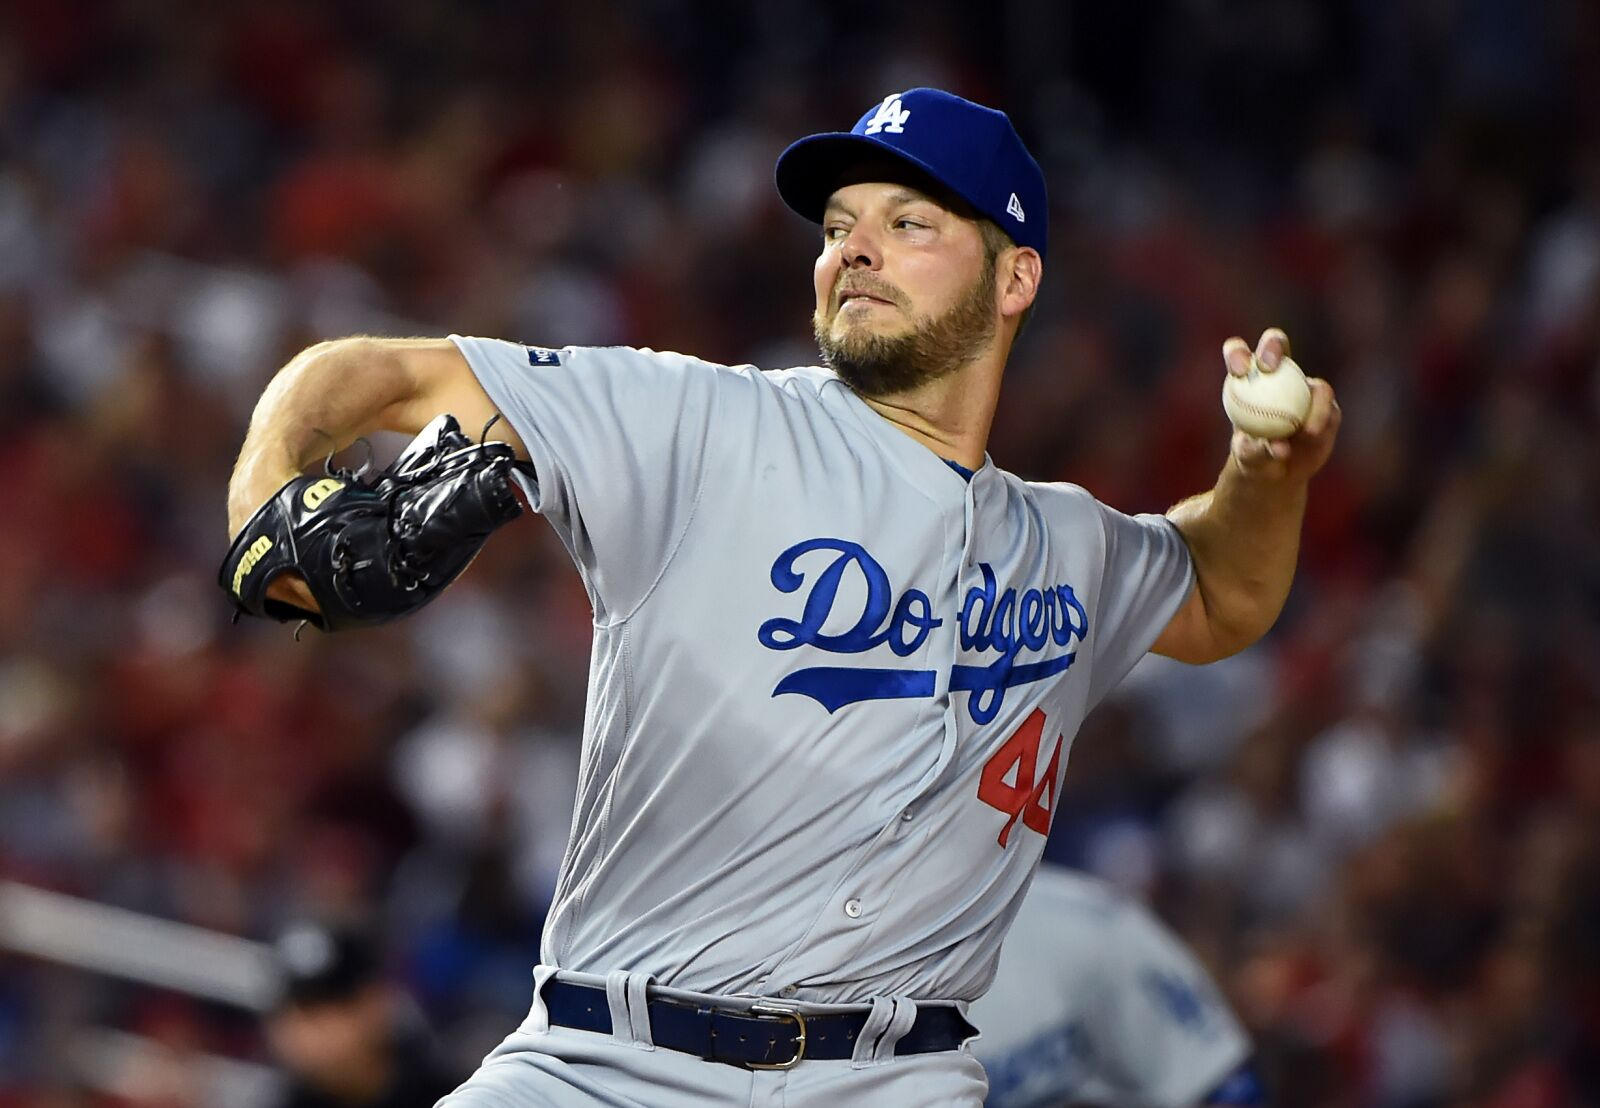 Yankees: 5 under-the-radar free agents the club should consider signing